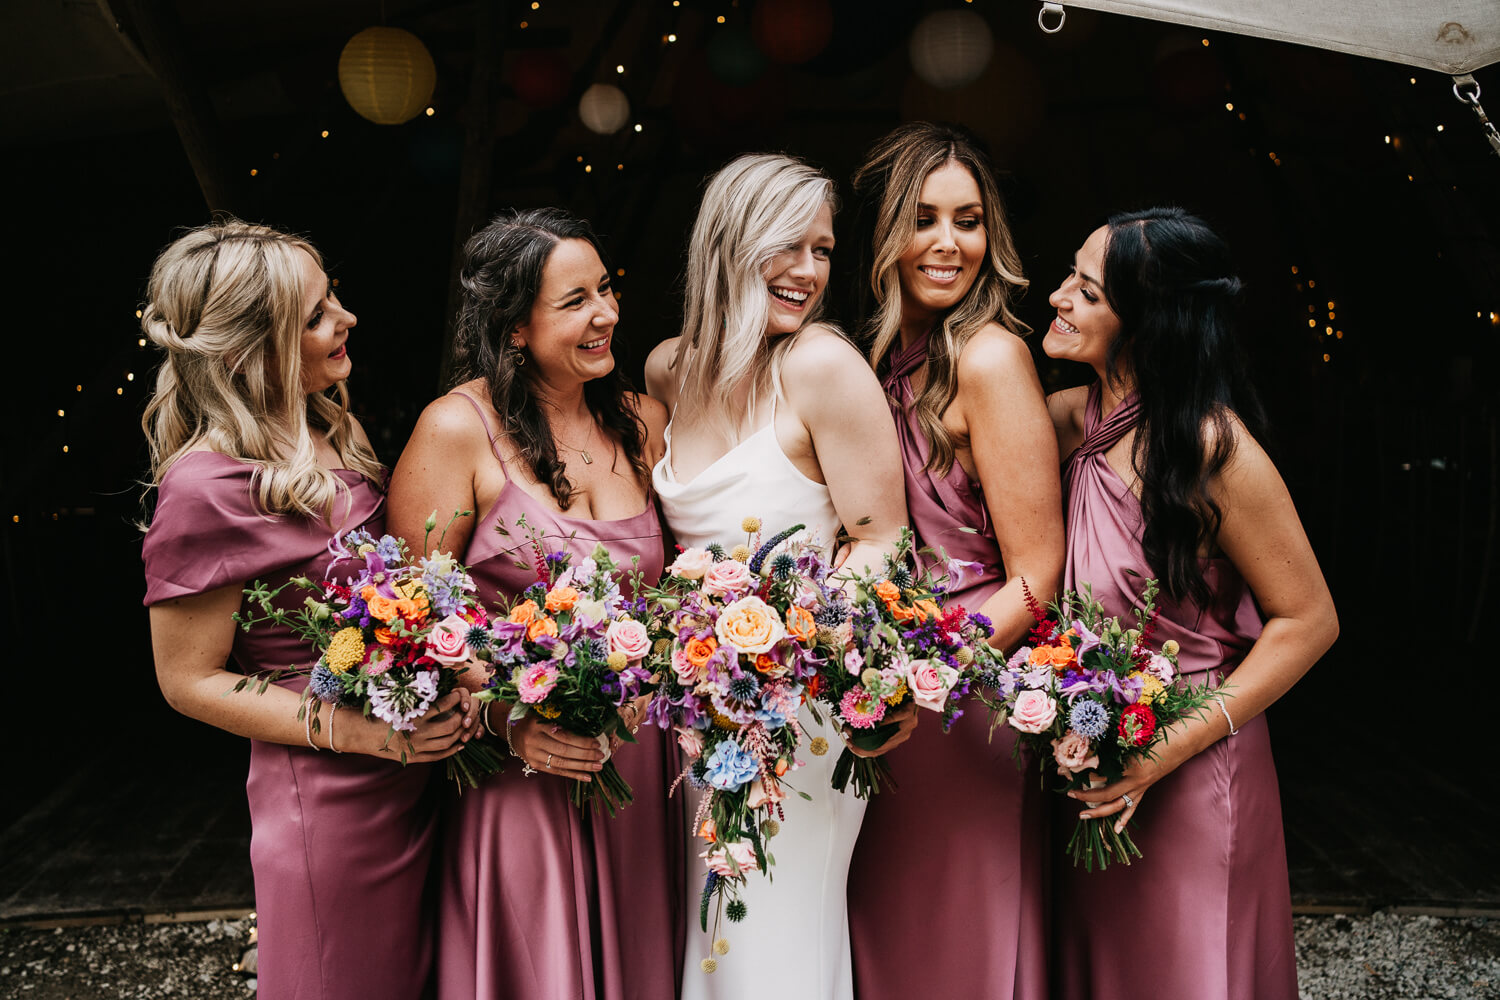 Pink bridesmaids dresses and colourful wedding bouquet